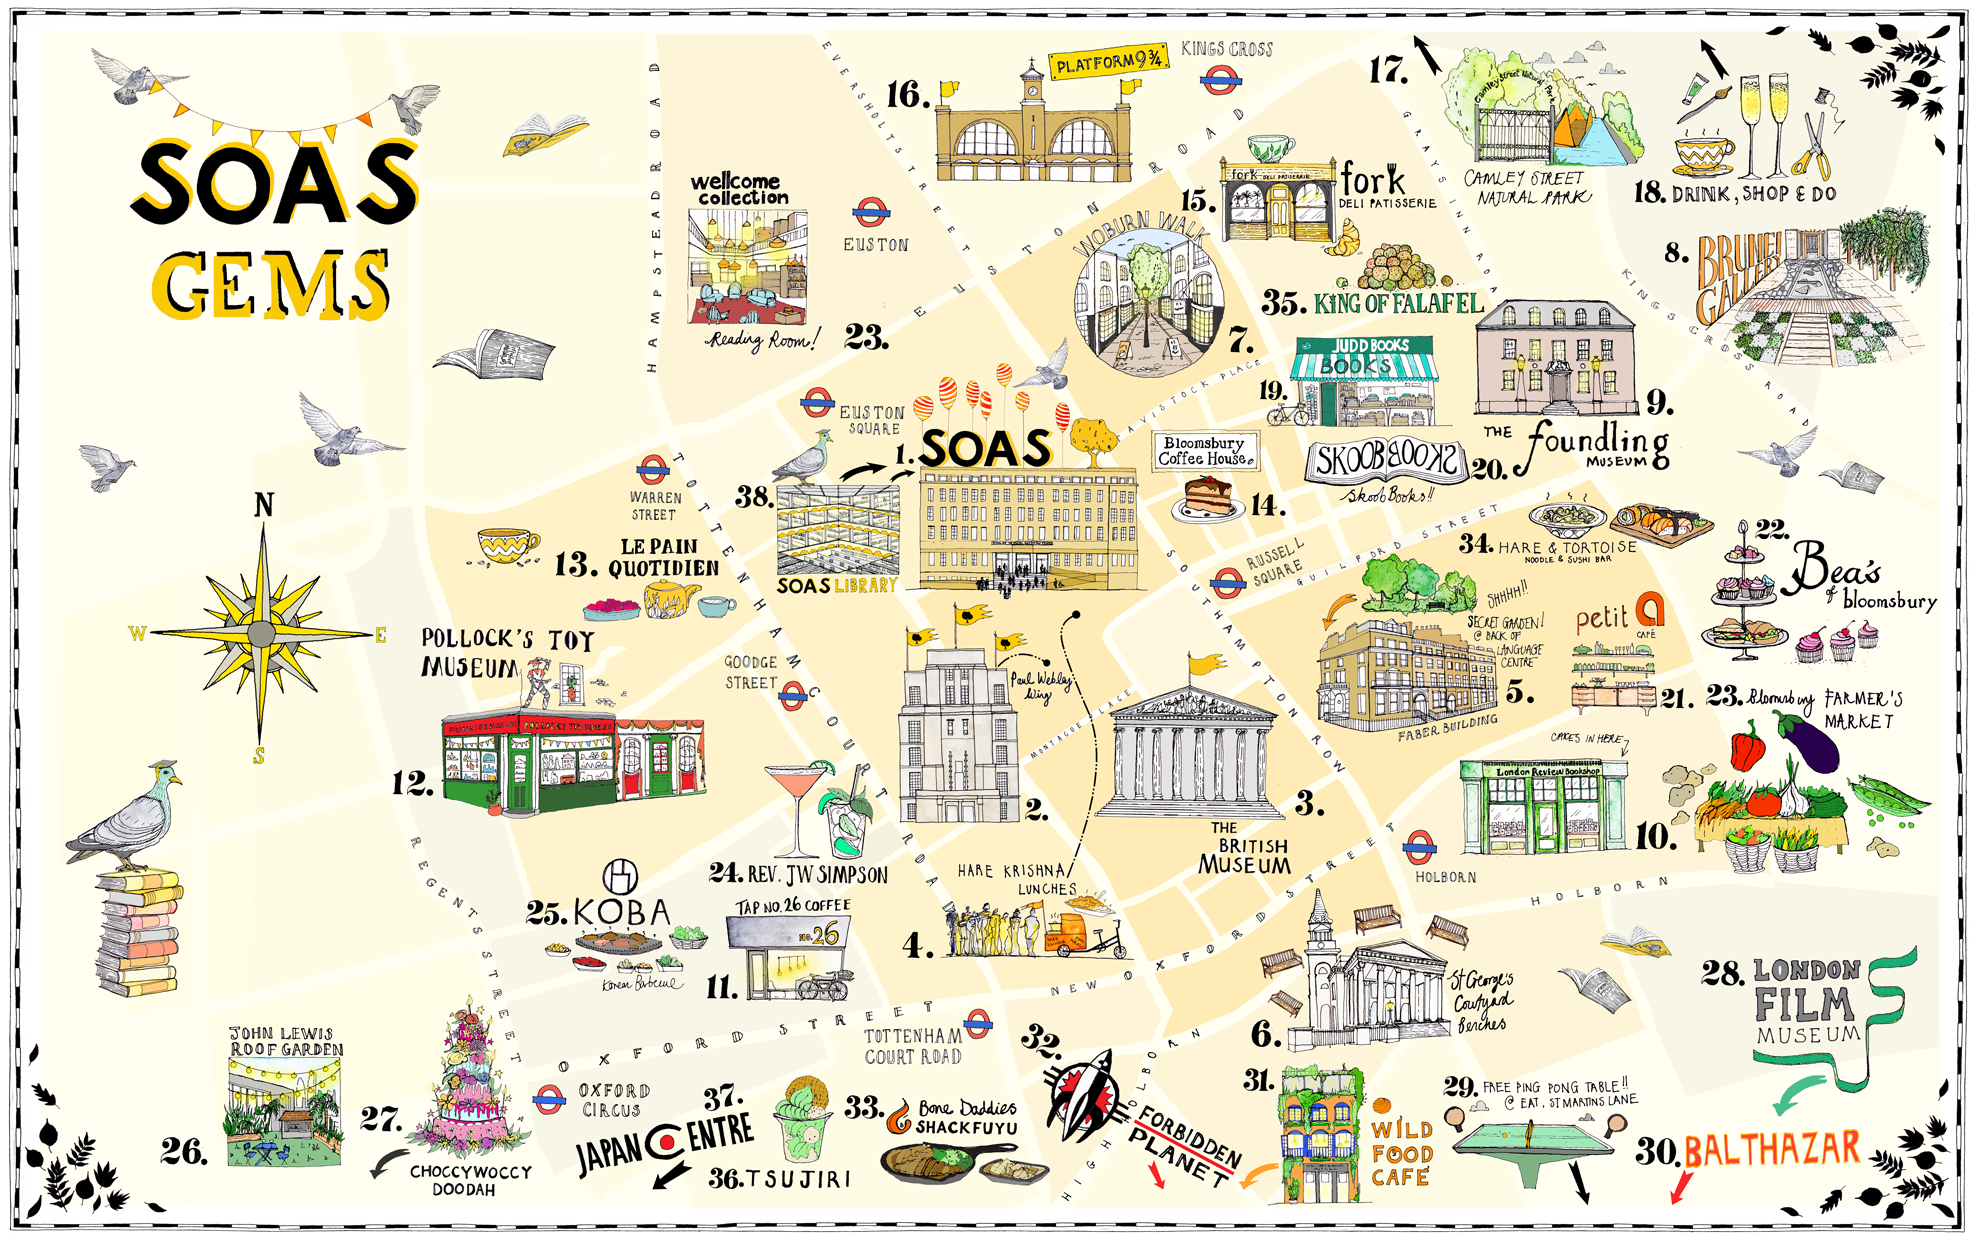 Map of SOAS Gems